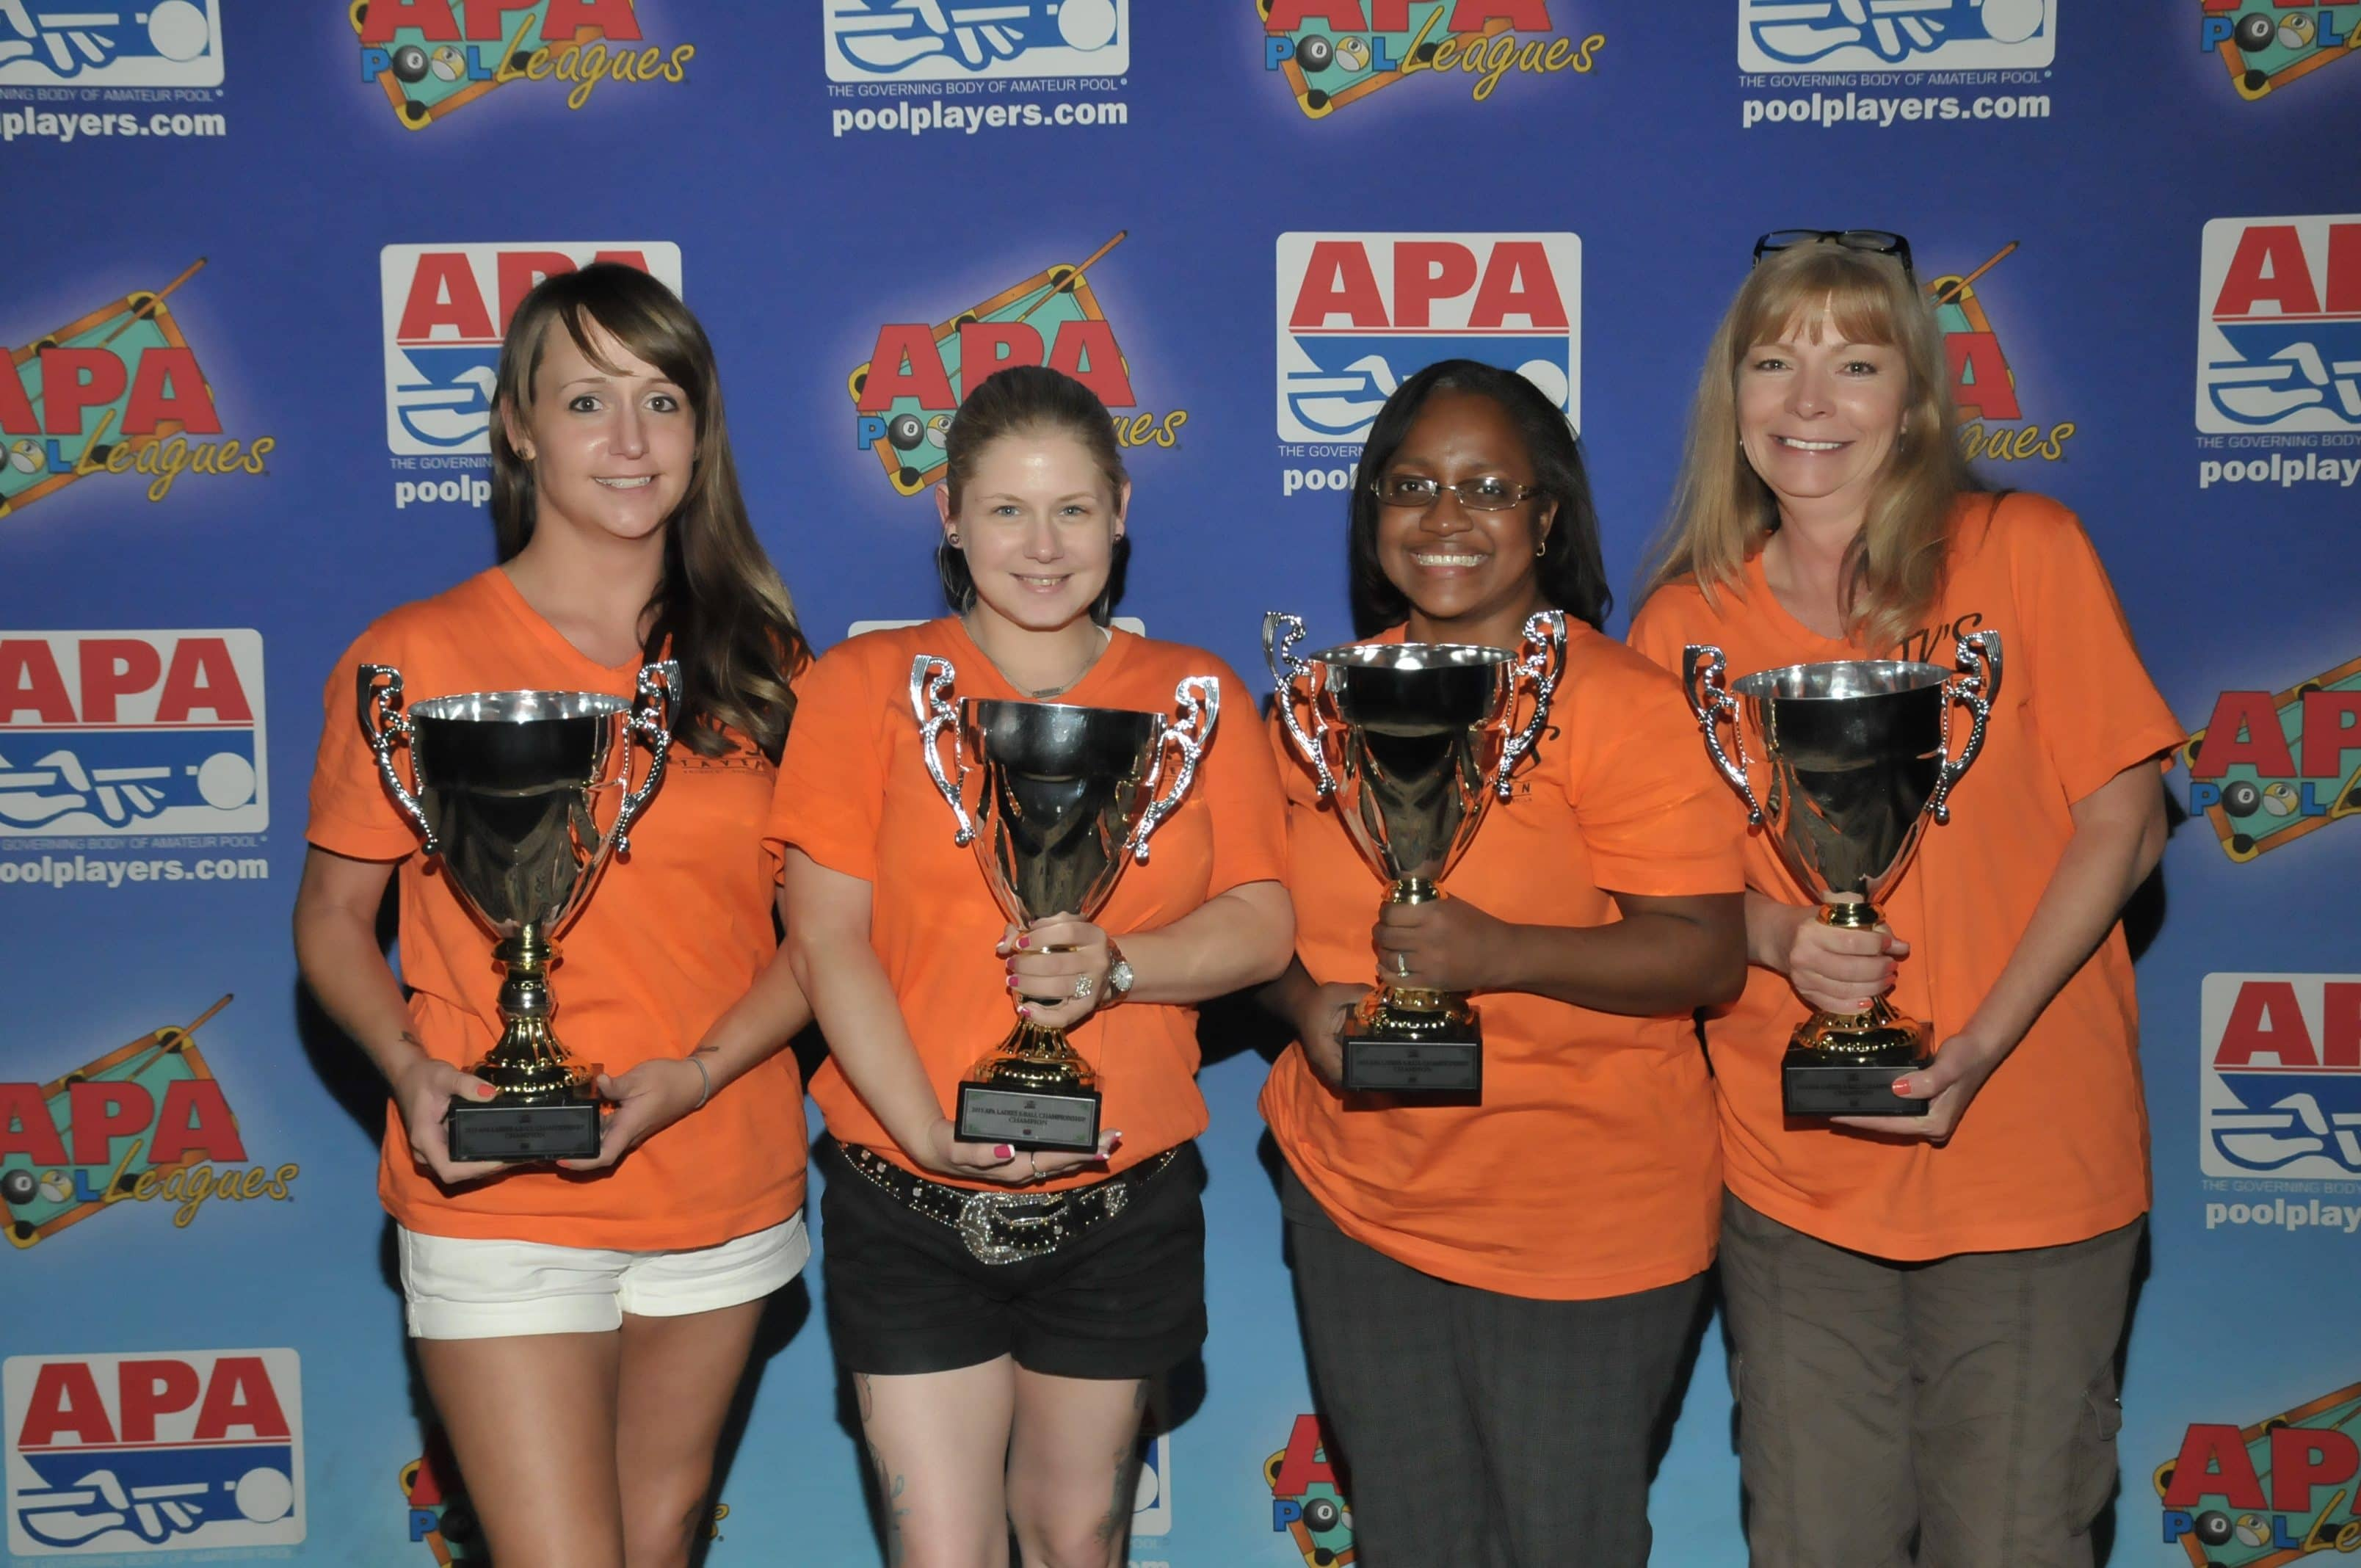 Champions: Just Like This! of Shreveport, LA (L to R): Hope Lawrence, Ashley Moras, Yolanda Phonphila, Tina Grosjean